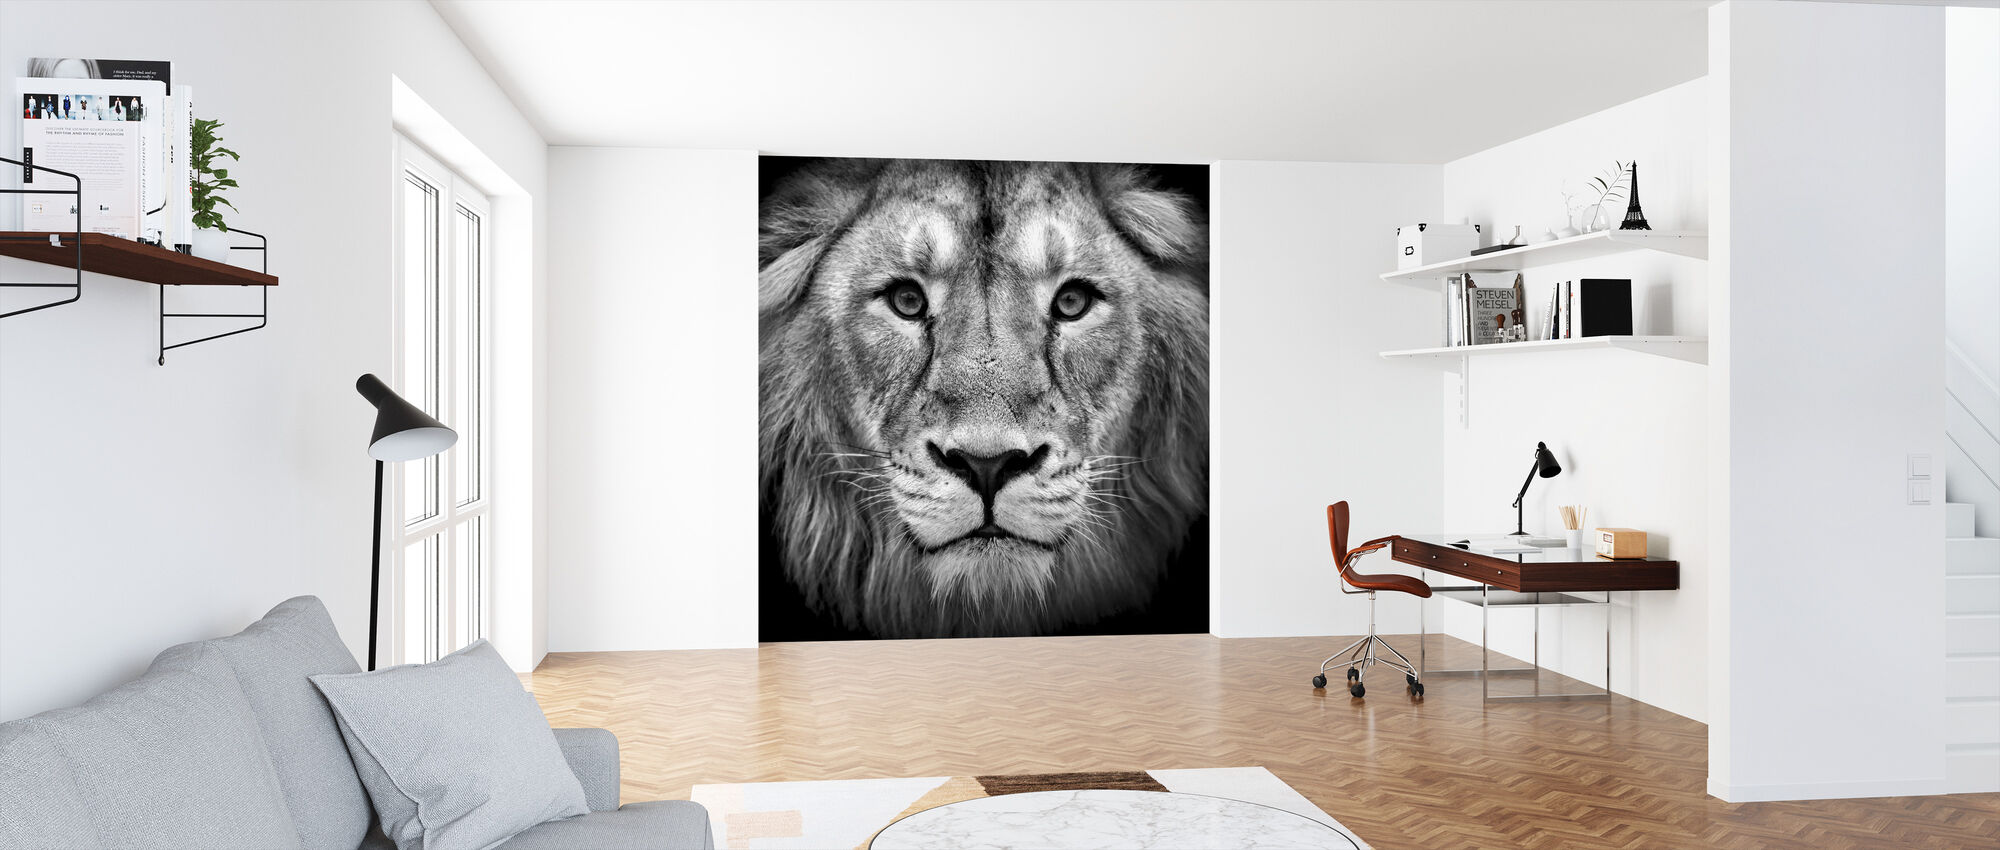 Wise Lion, black and white - Wallpaper - Office